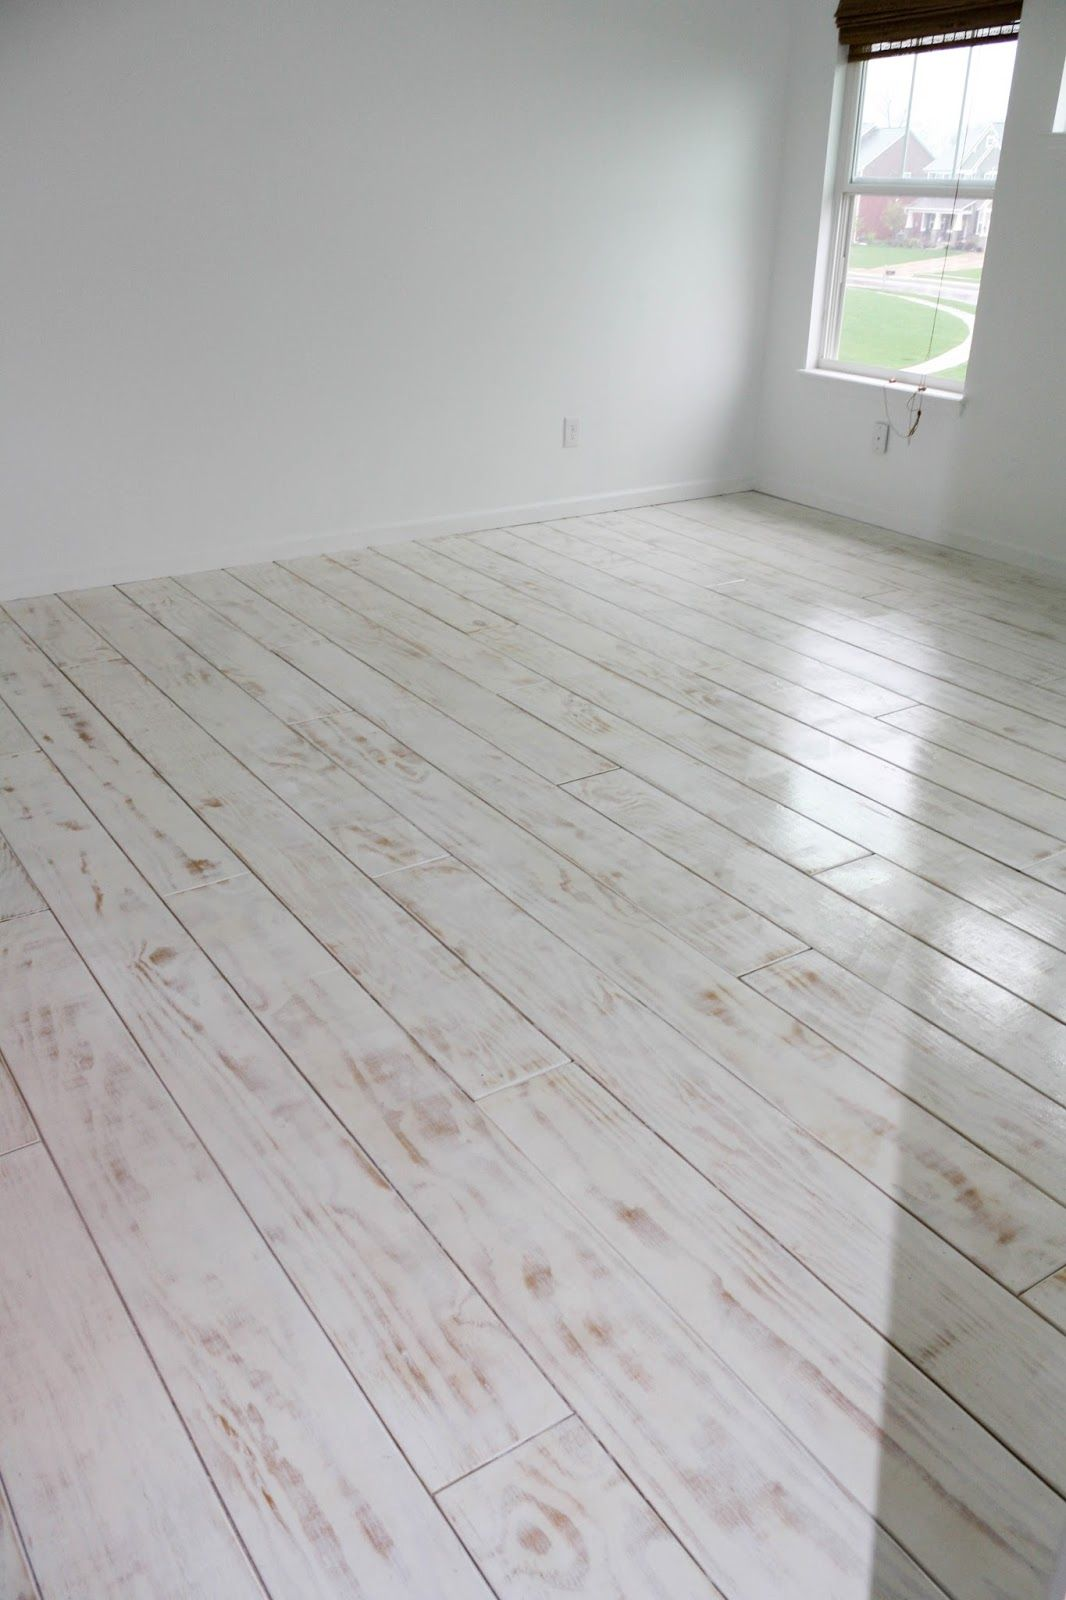 Diy Planked Floors Diy Flooring White Wood Floors Plank Flooring